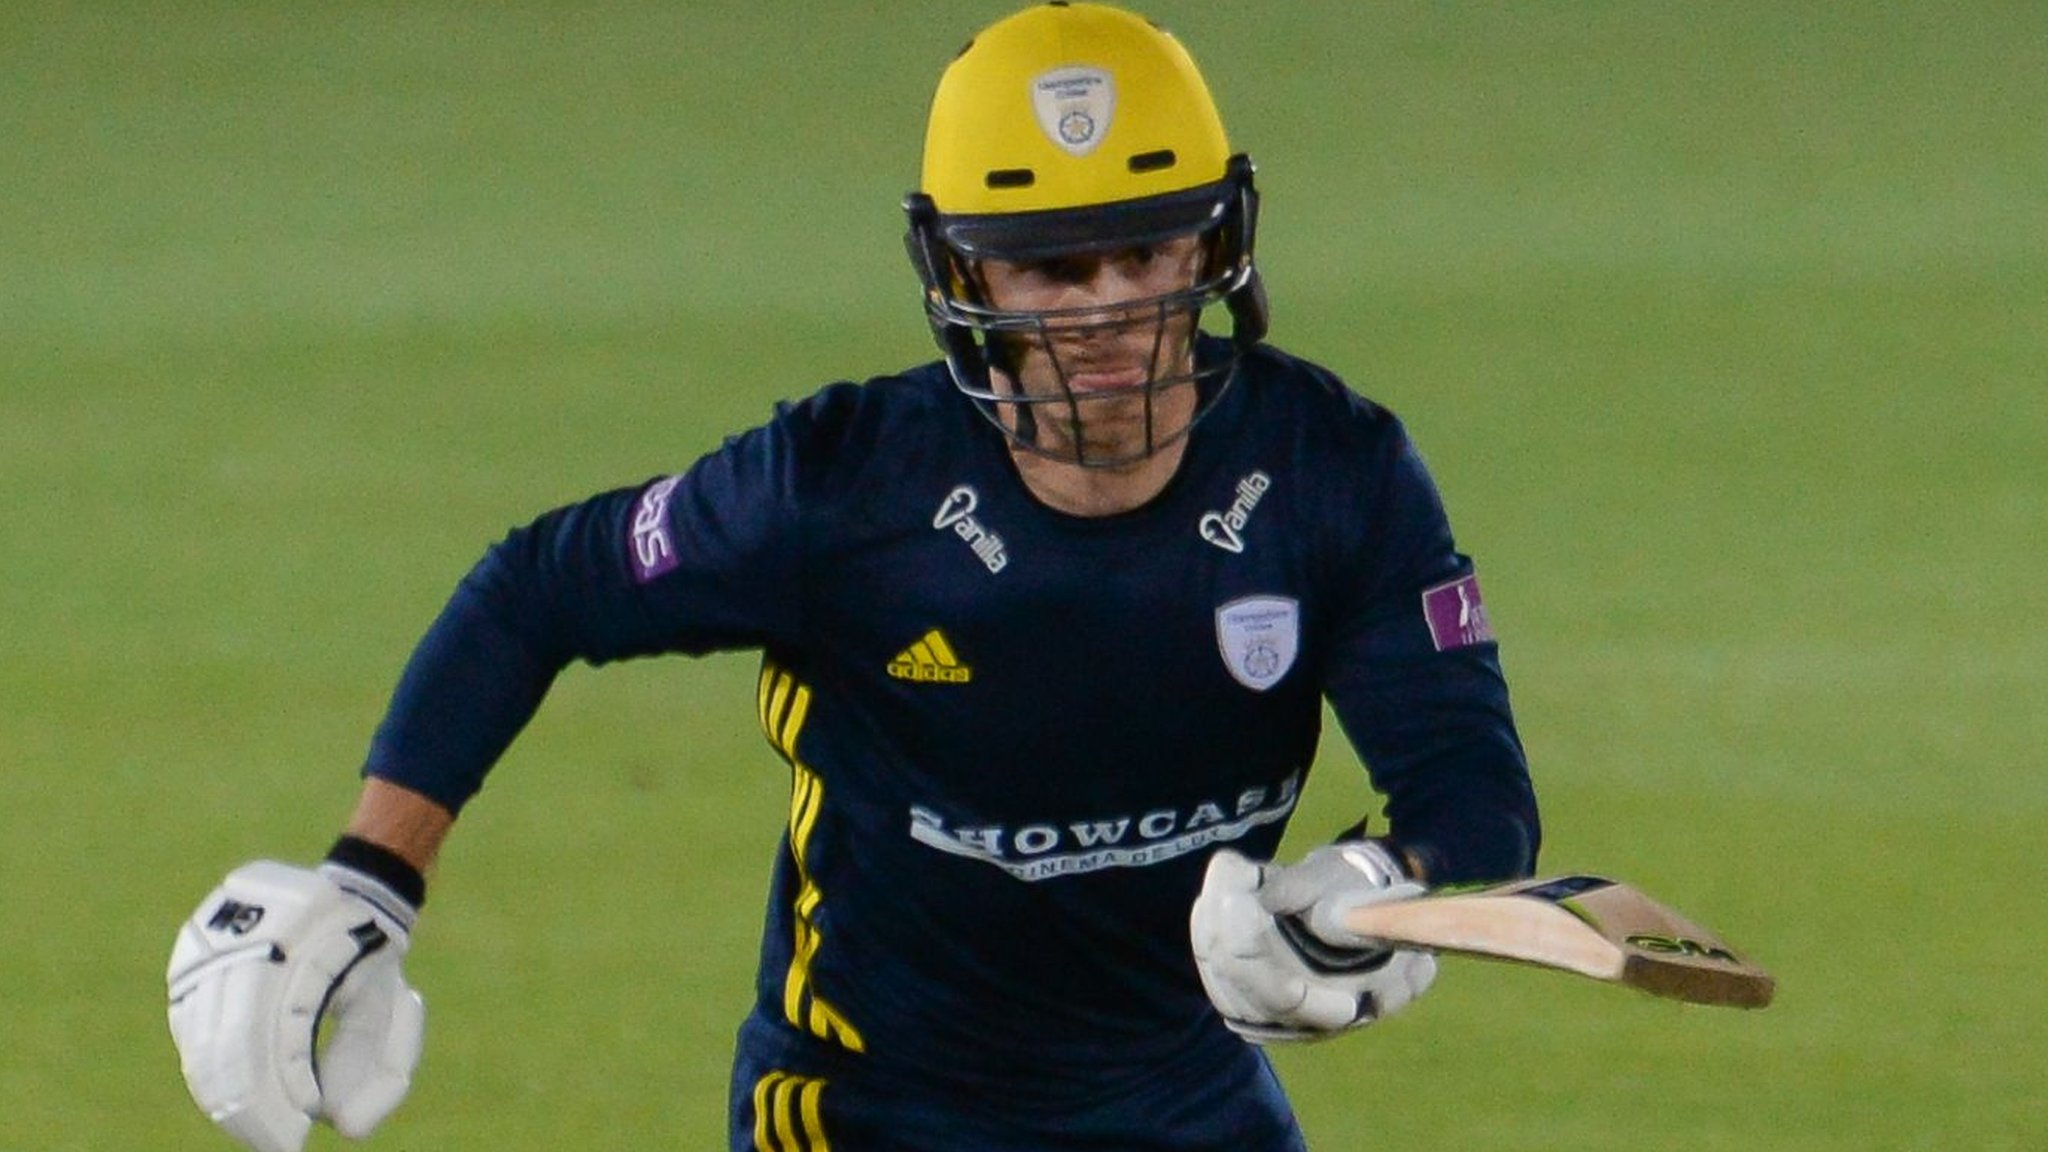 One-Day Cup: Kent edge out Hampshire despite Weatherley hundred